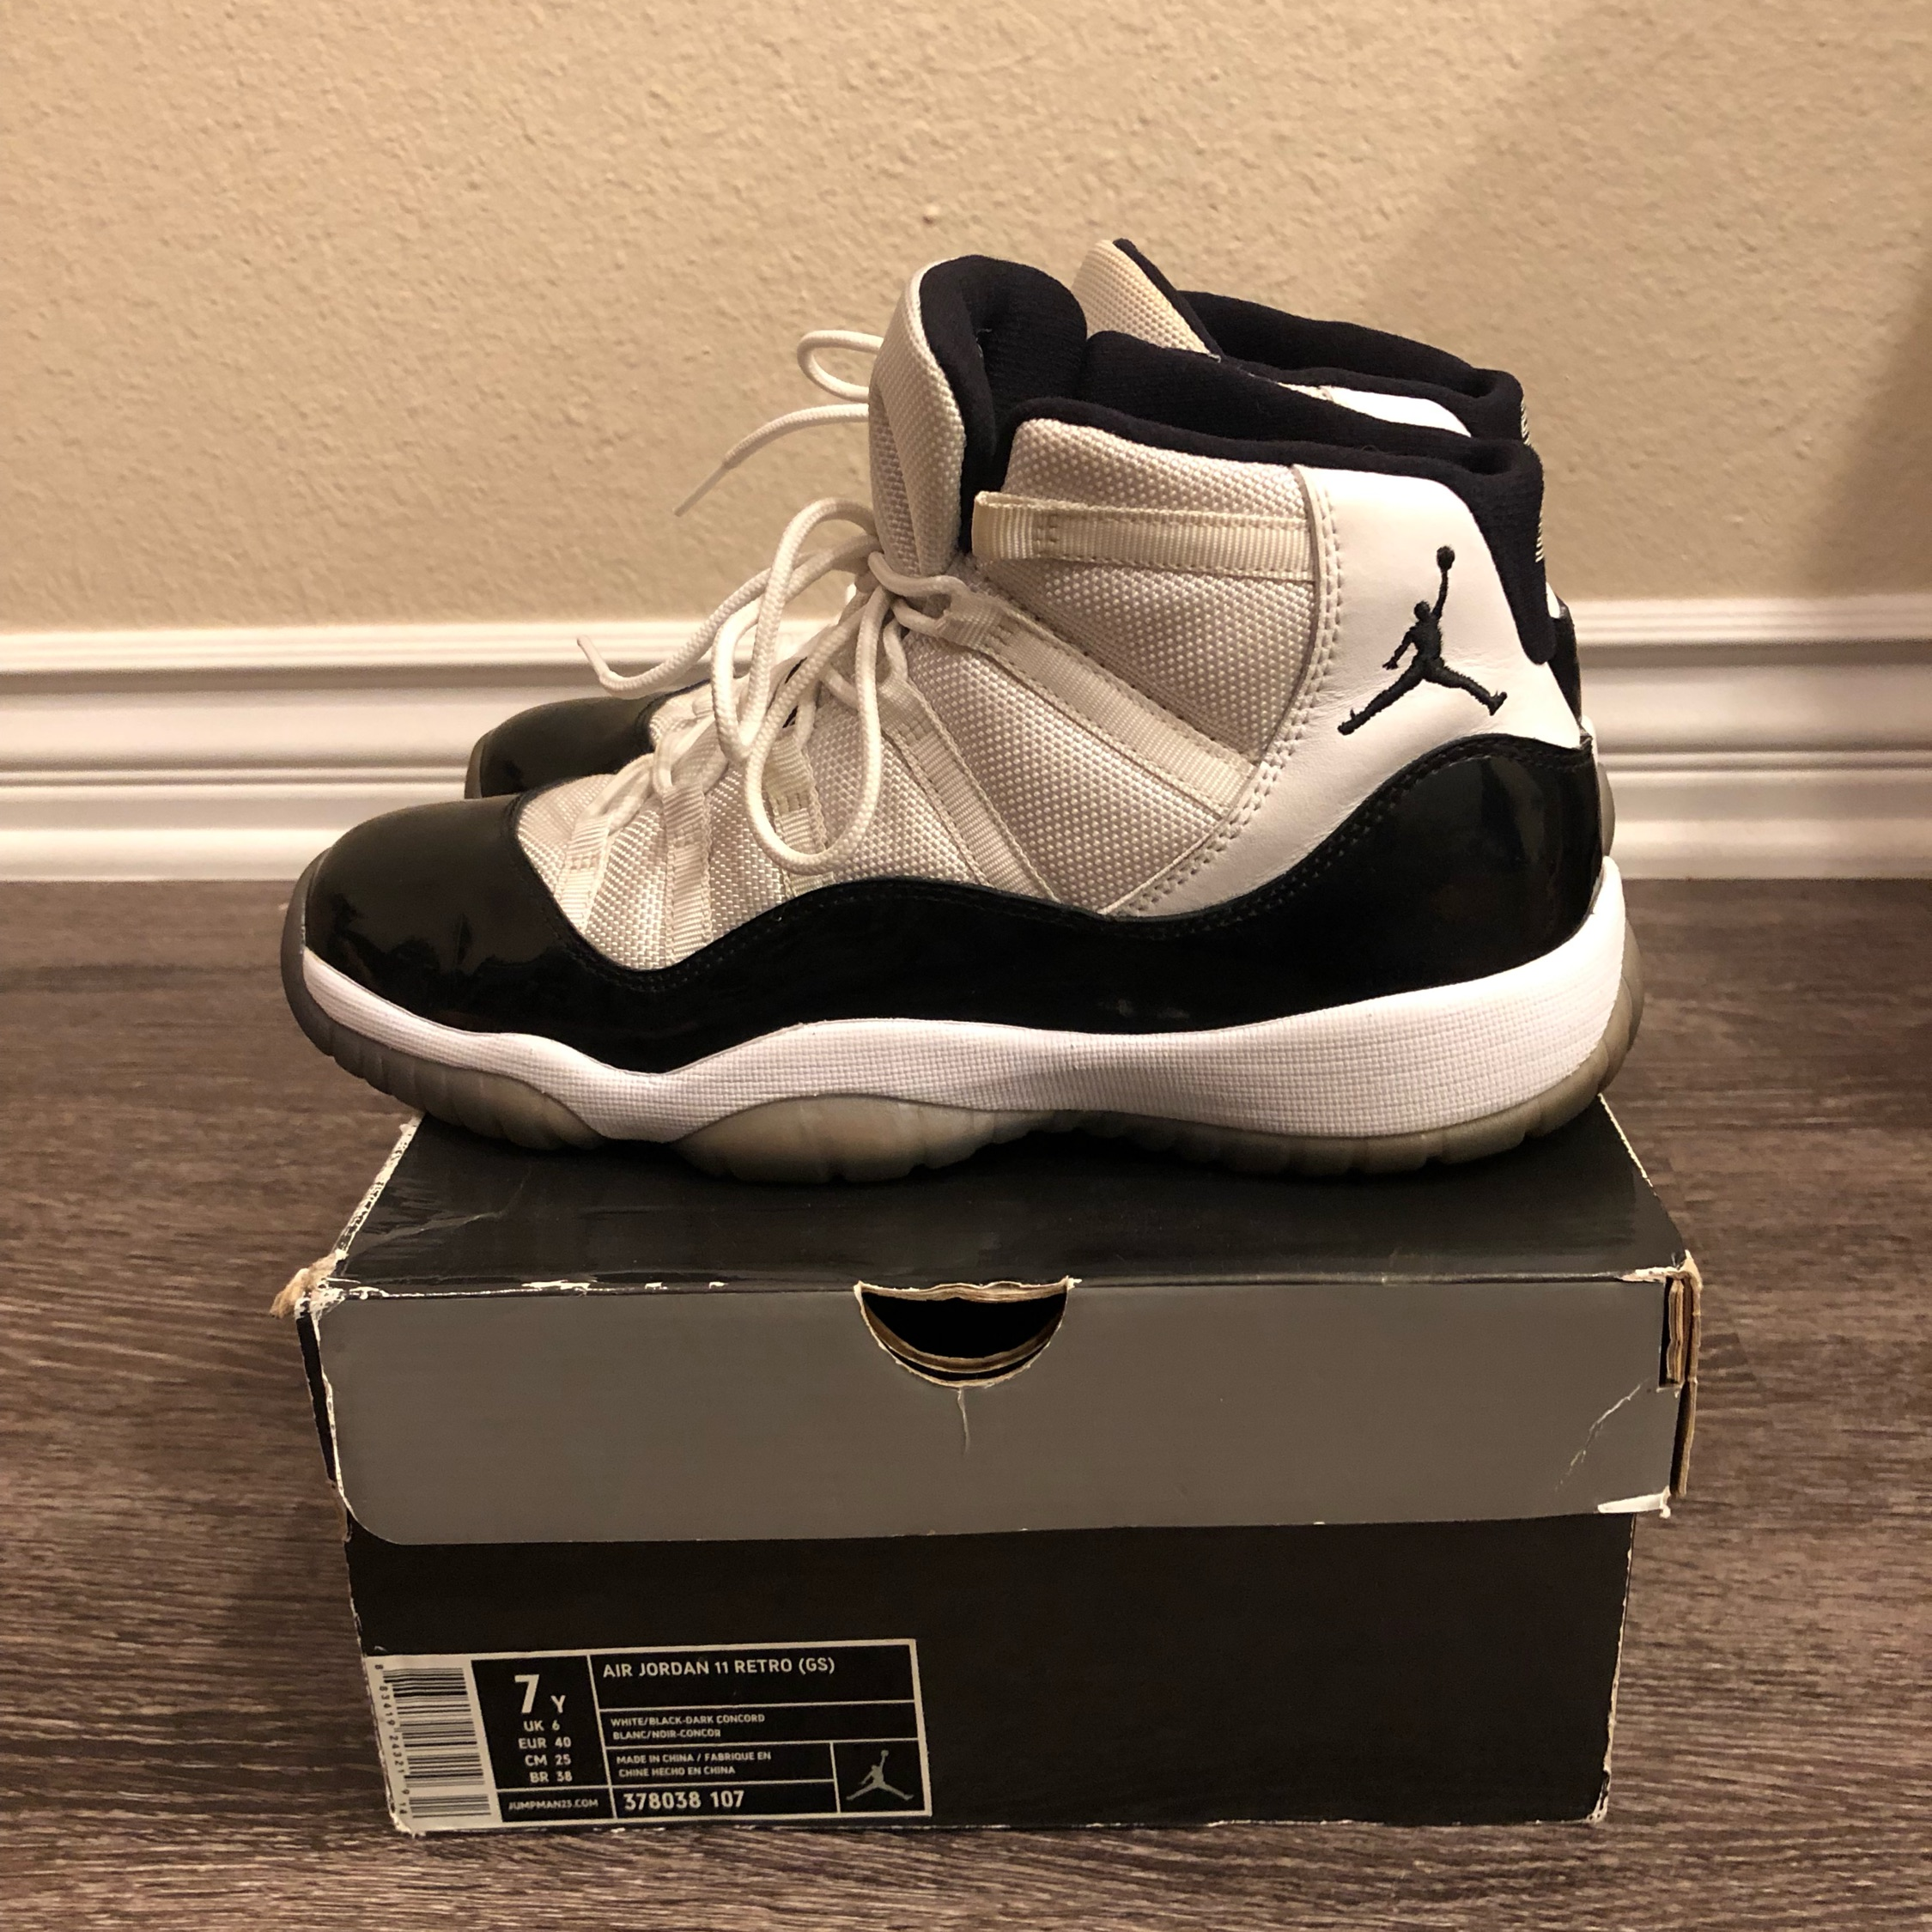 separation shoes 15145 304aa Air Jordan 11 Concord 2011 Size 7